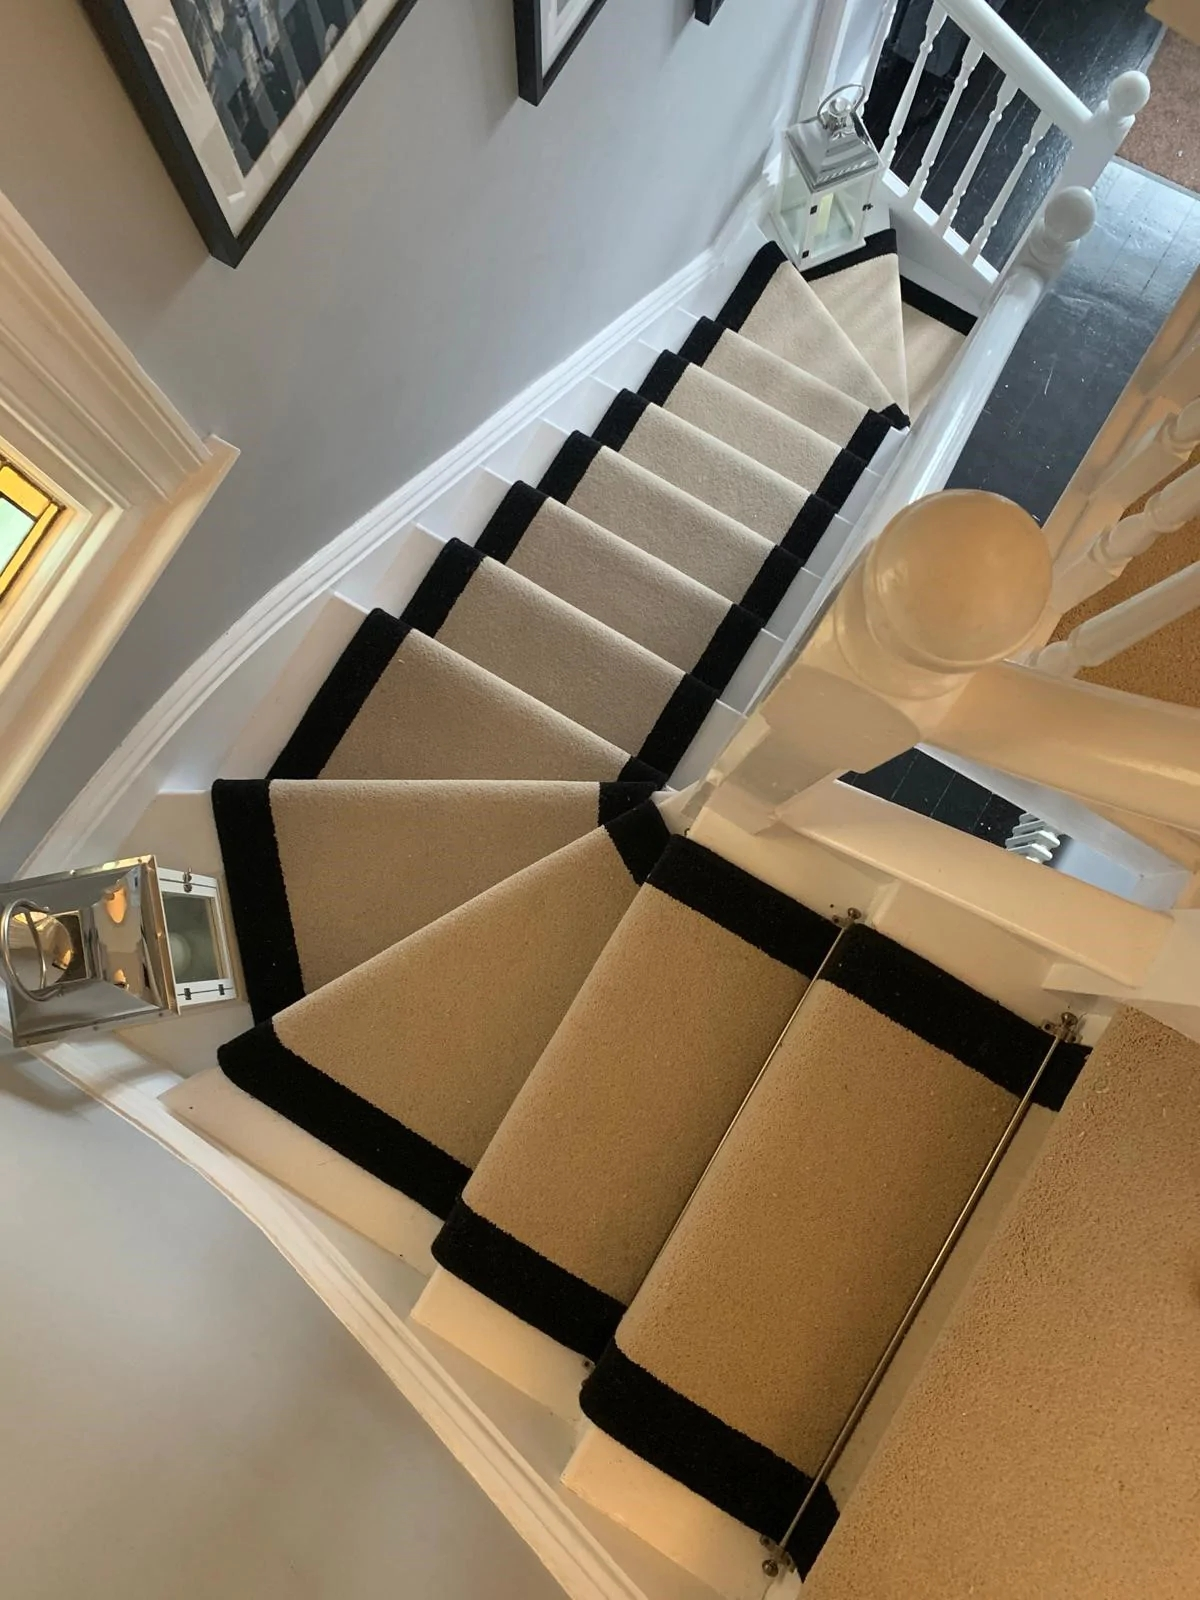 We Are Over The Moon With Our Stair Runner And Landing Carpet   Runners On Stairs With Landings   Roger Oates   French Tuck   Annie Selke   Before And After   Runners Up